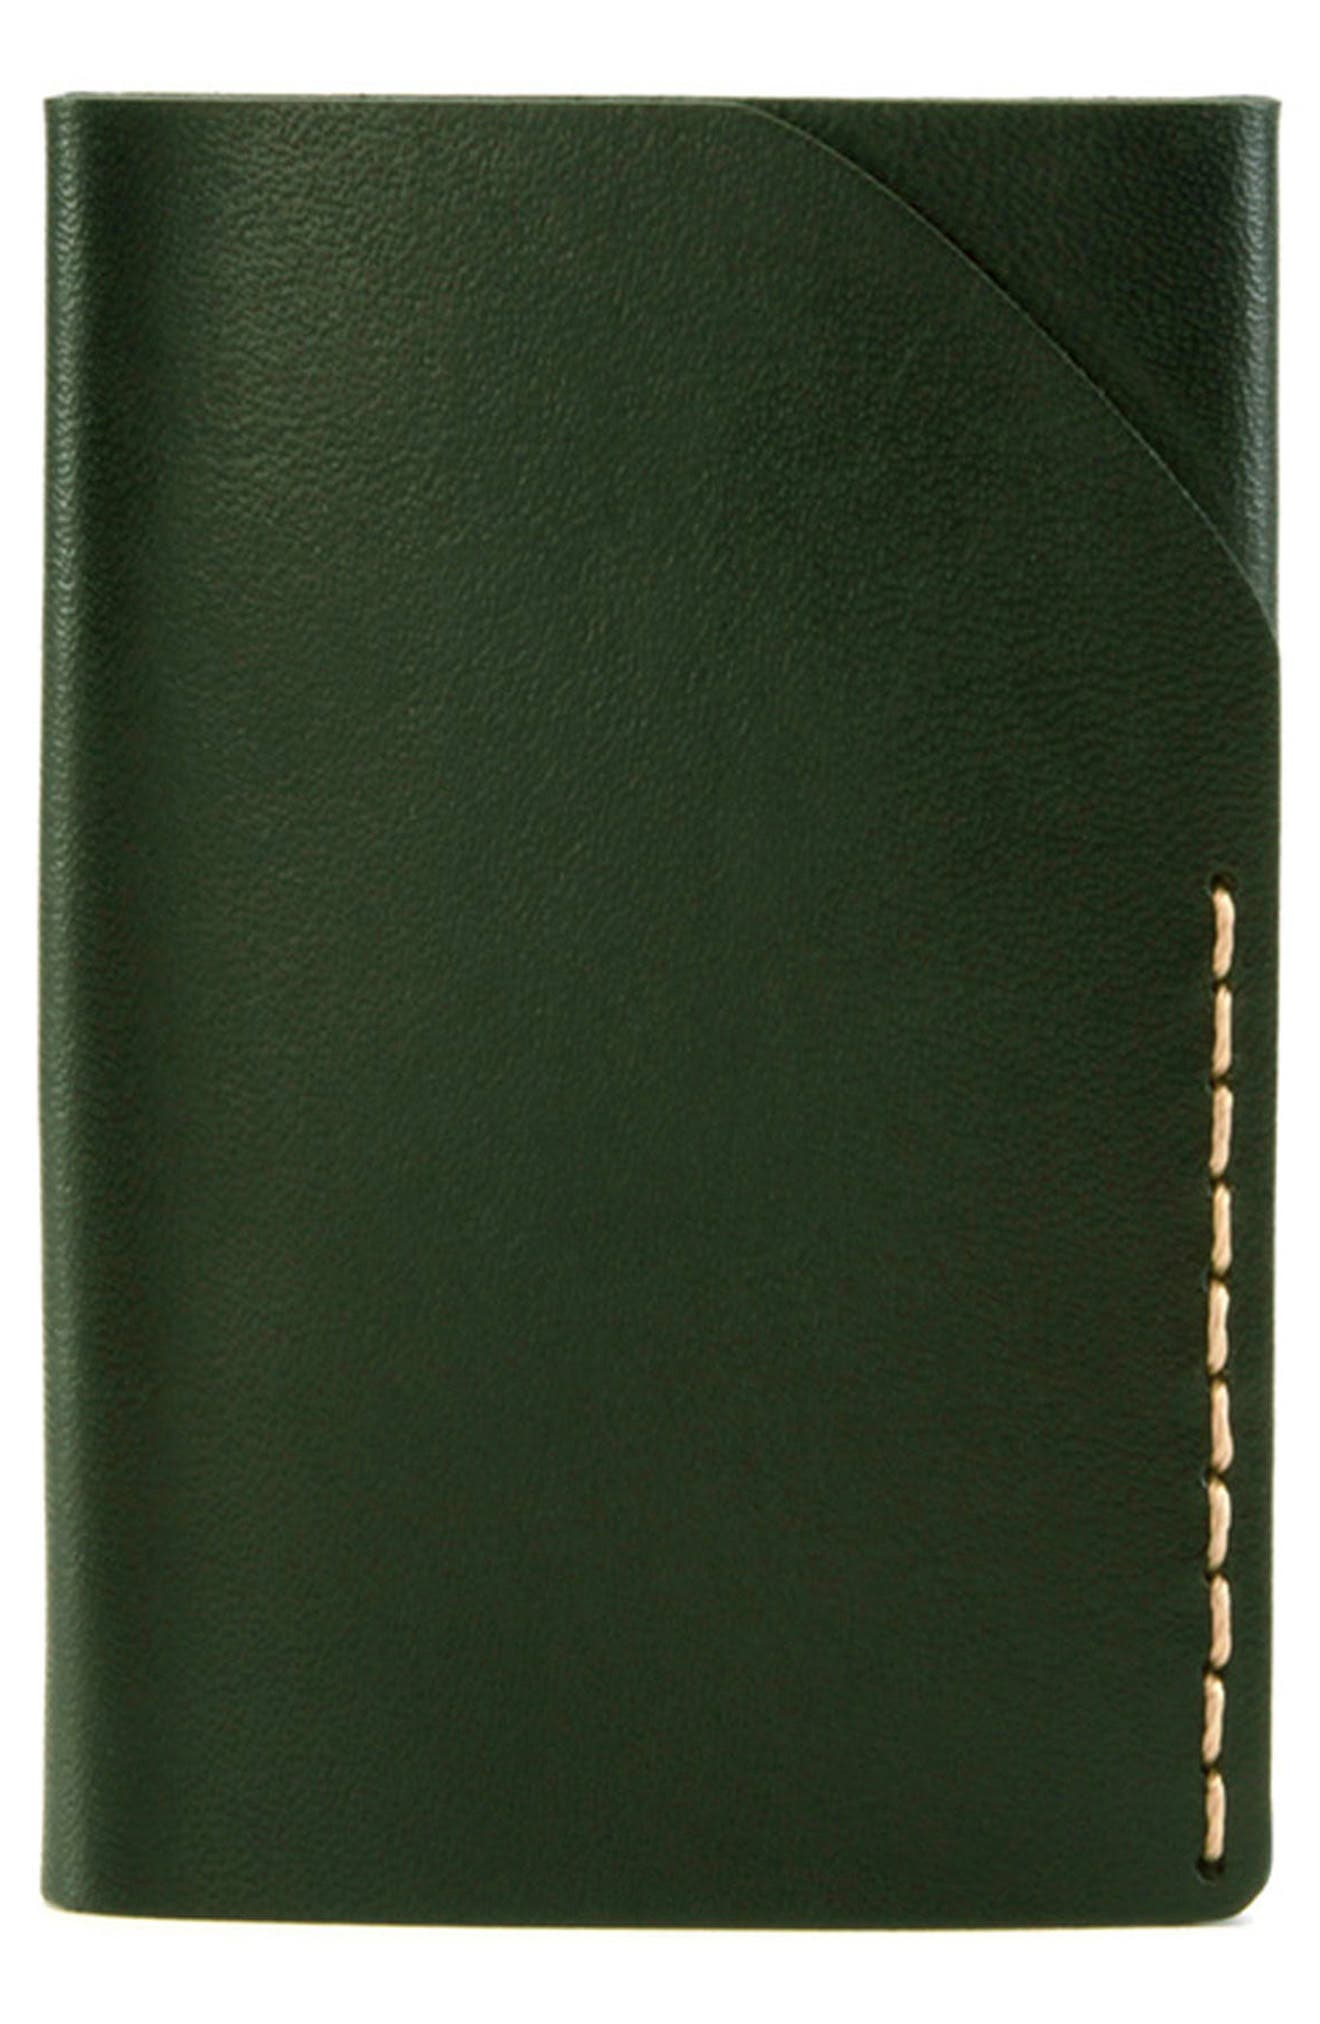 No. 2 Leather Card Case,                             Main thumbnail 1, color,                             Green